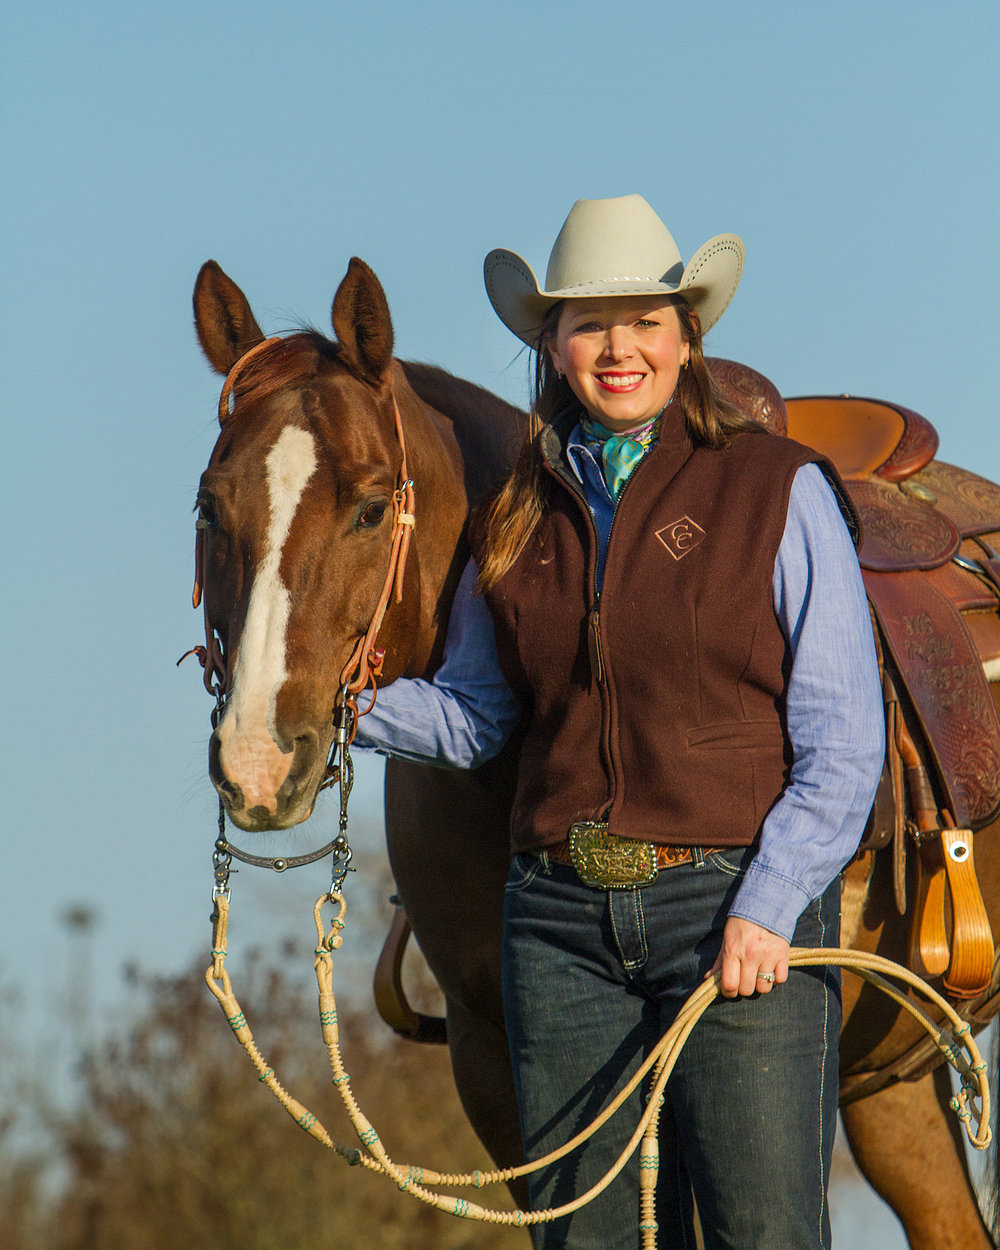 Kate and her cow horse, Burn One Turn One. Photo by Ross Hecox.